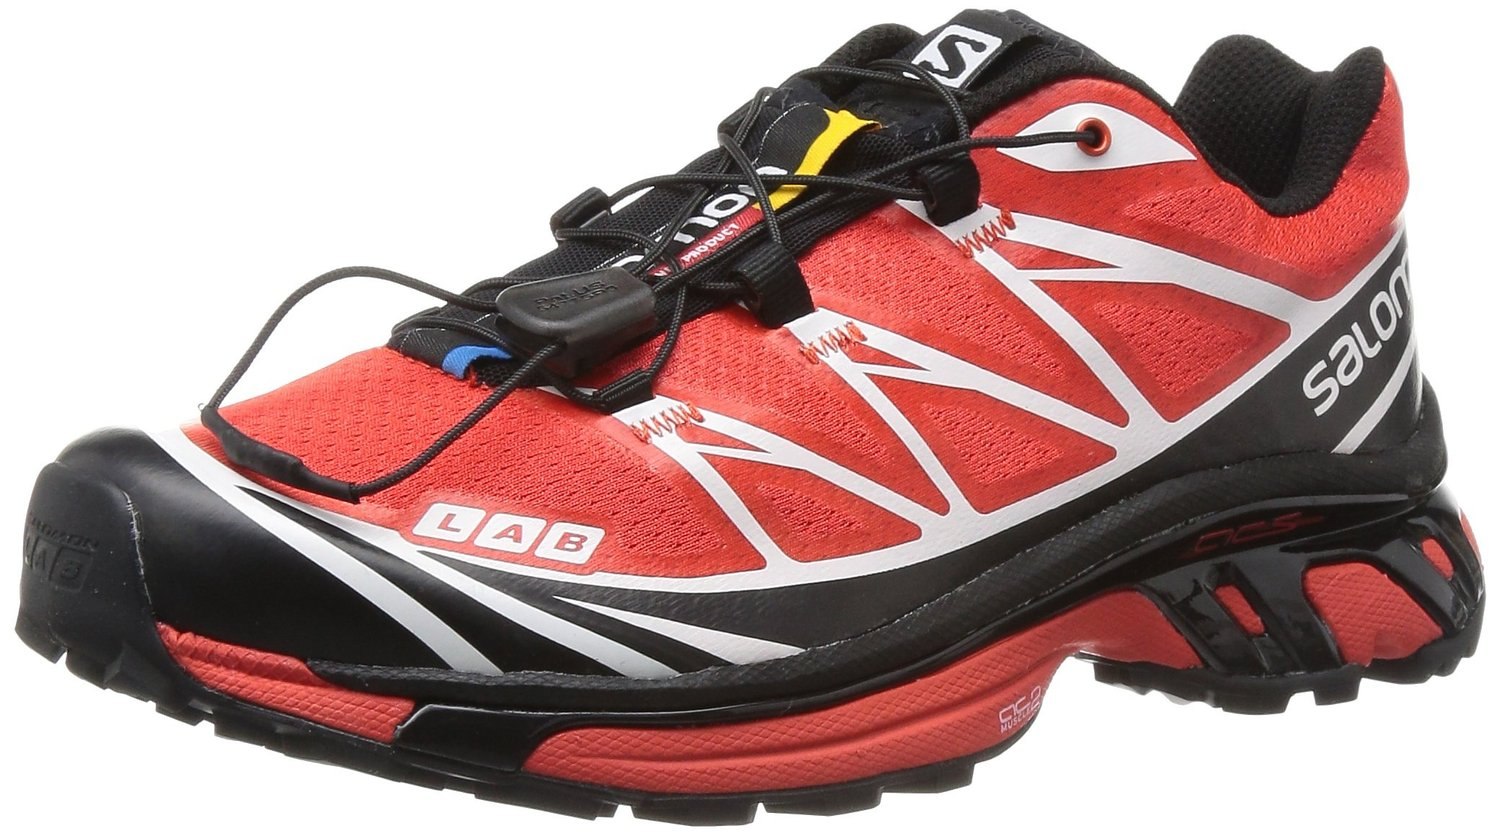 5 Xt Cheap In Price Lab Running Salomon Softground Trail Buy S Shoes XiuPOkZT